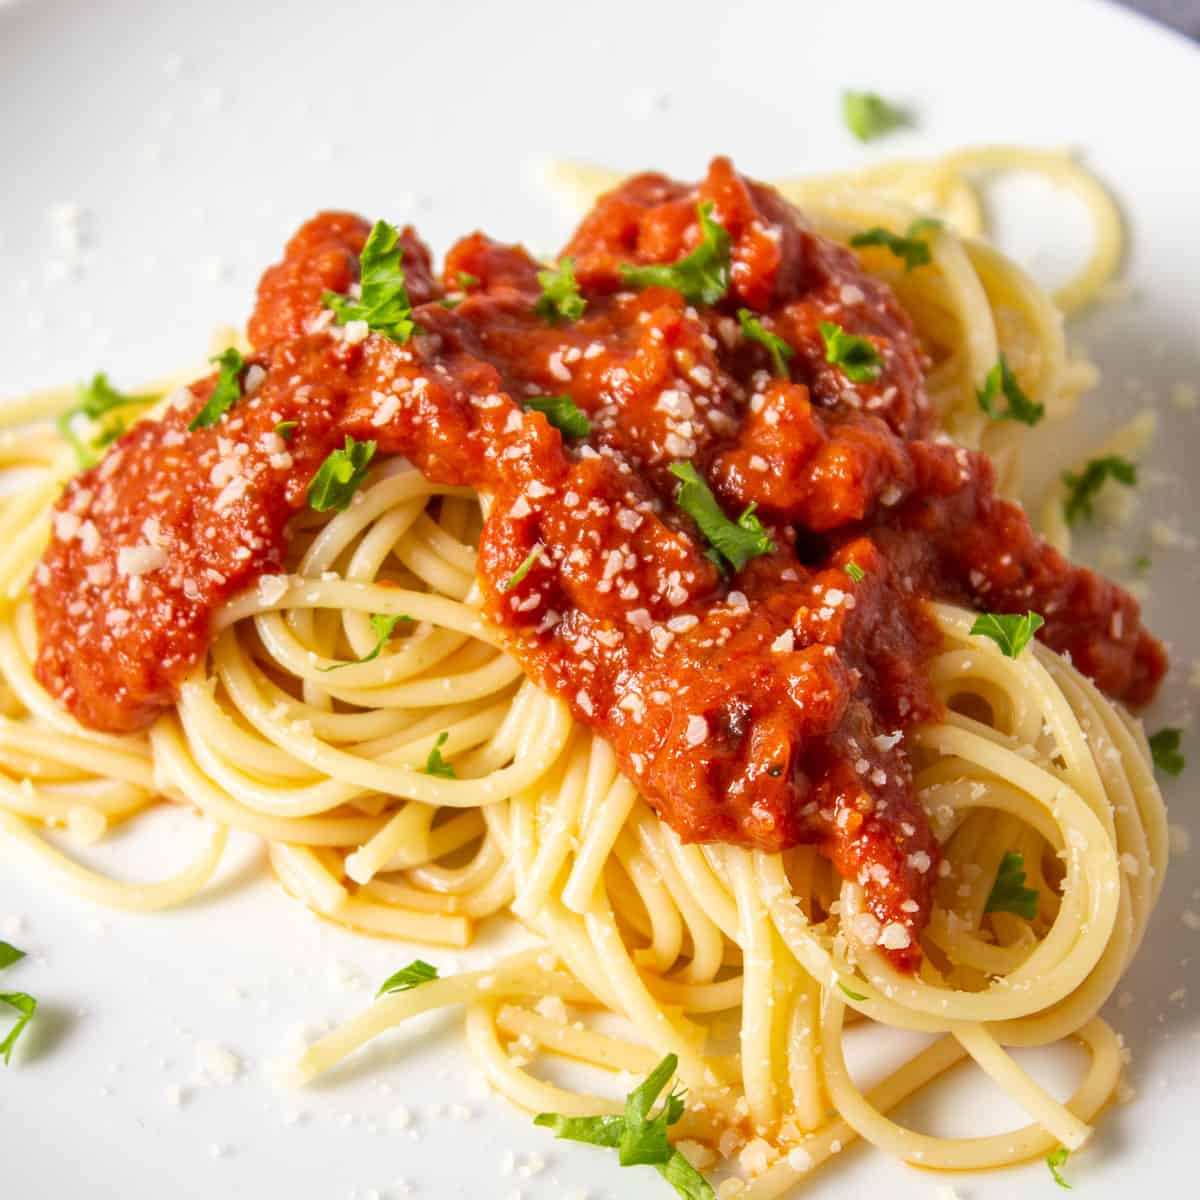 Spaghetti noodles topped with a roasted tomato sauce and topped with parmesan cheese.